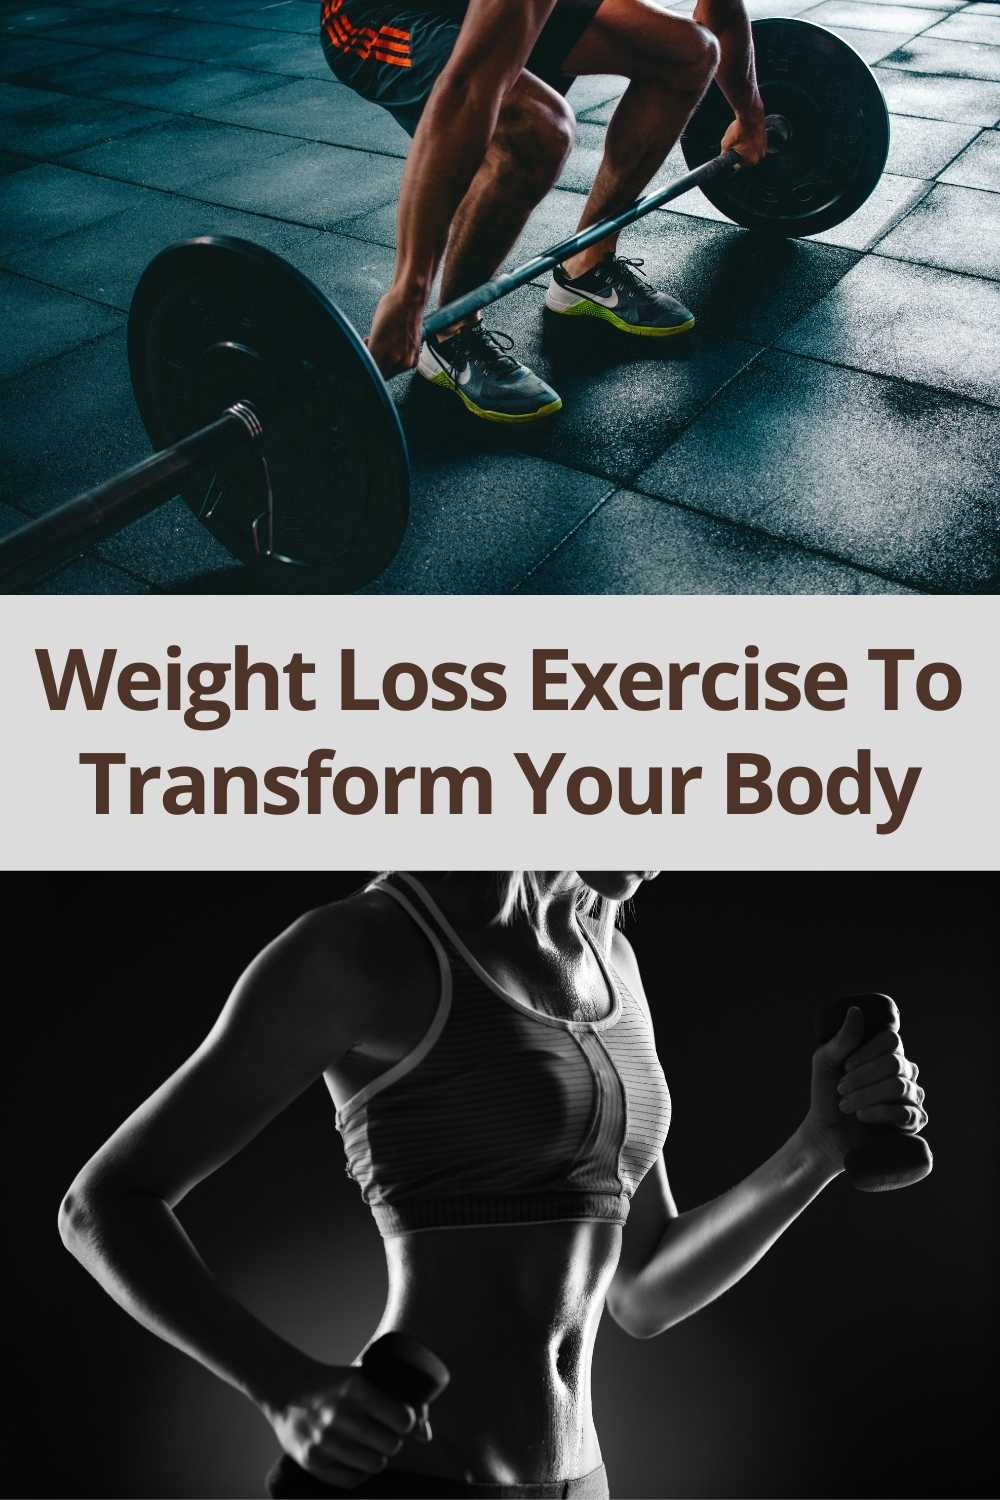 Weight Loss Exercise To Transform Your Body